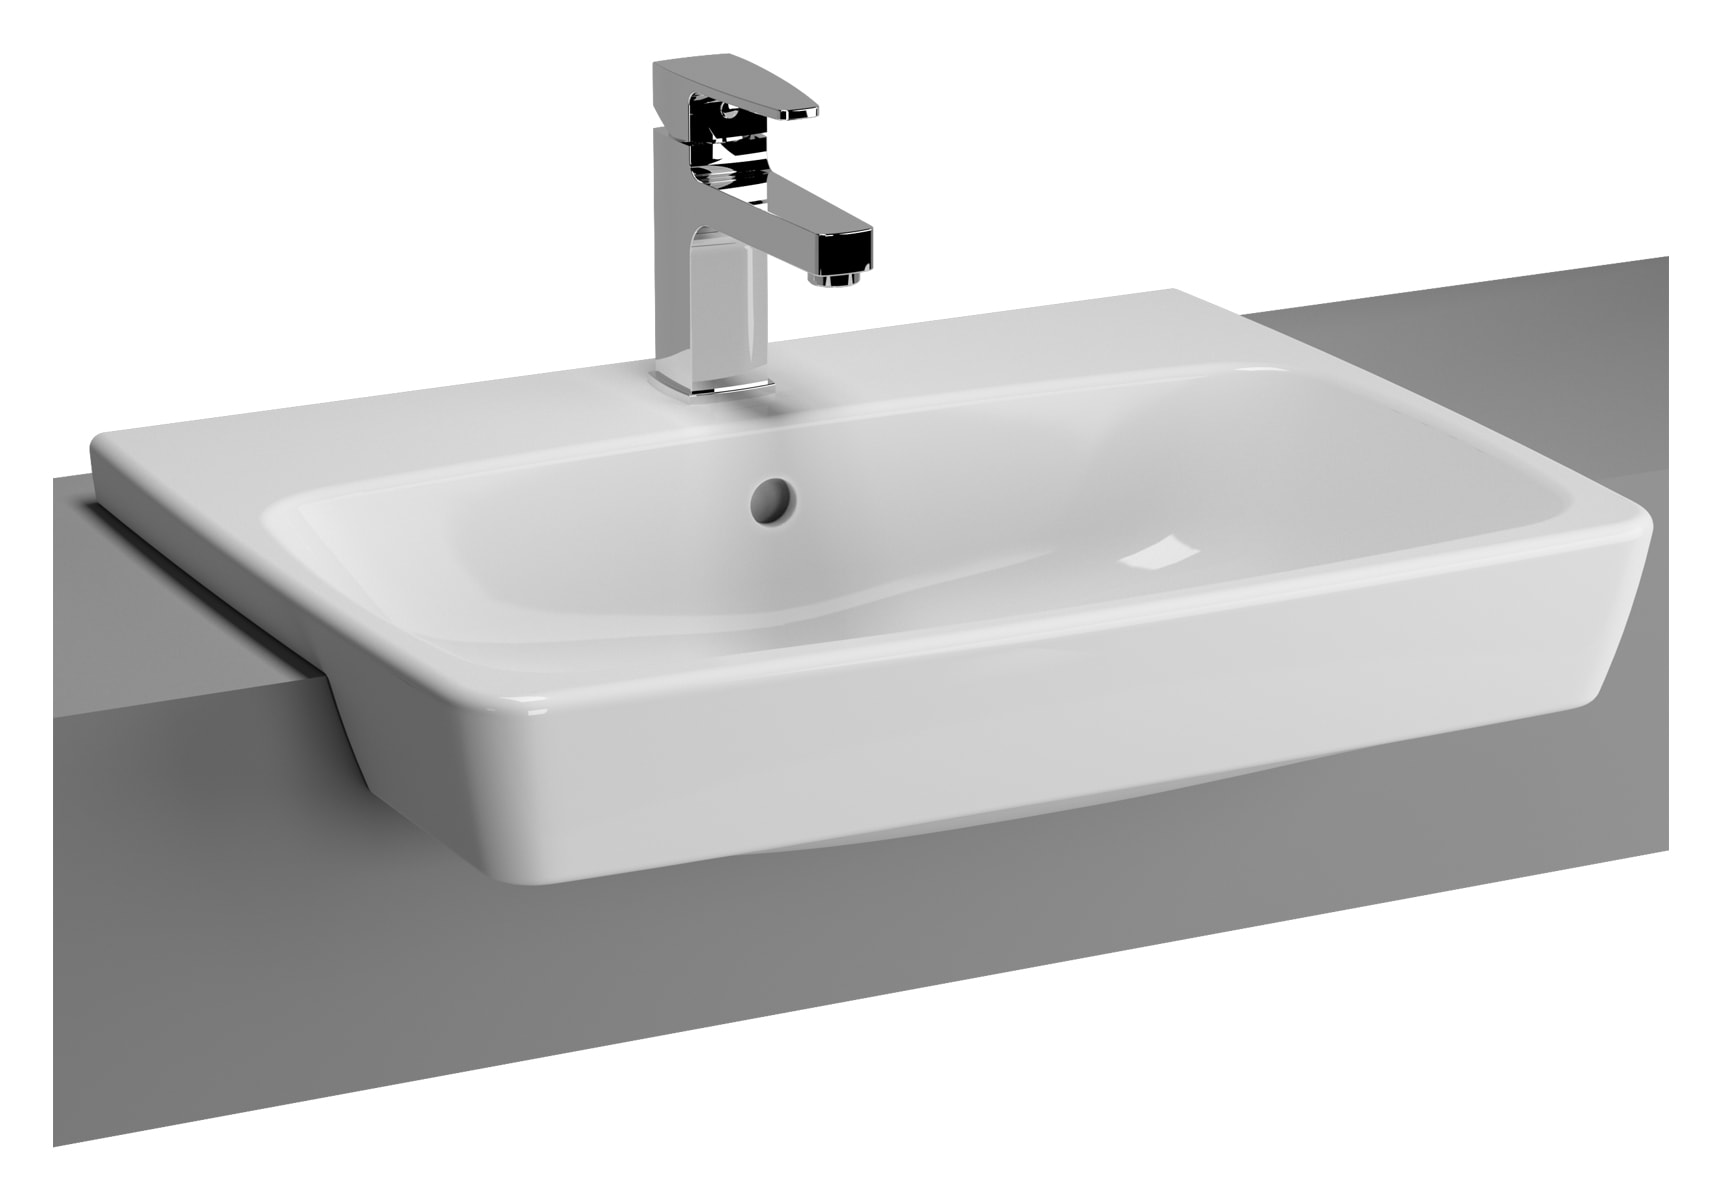 Metropole Recessed Basin with Middle Tap Hole, with Side Holes